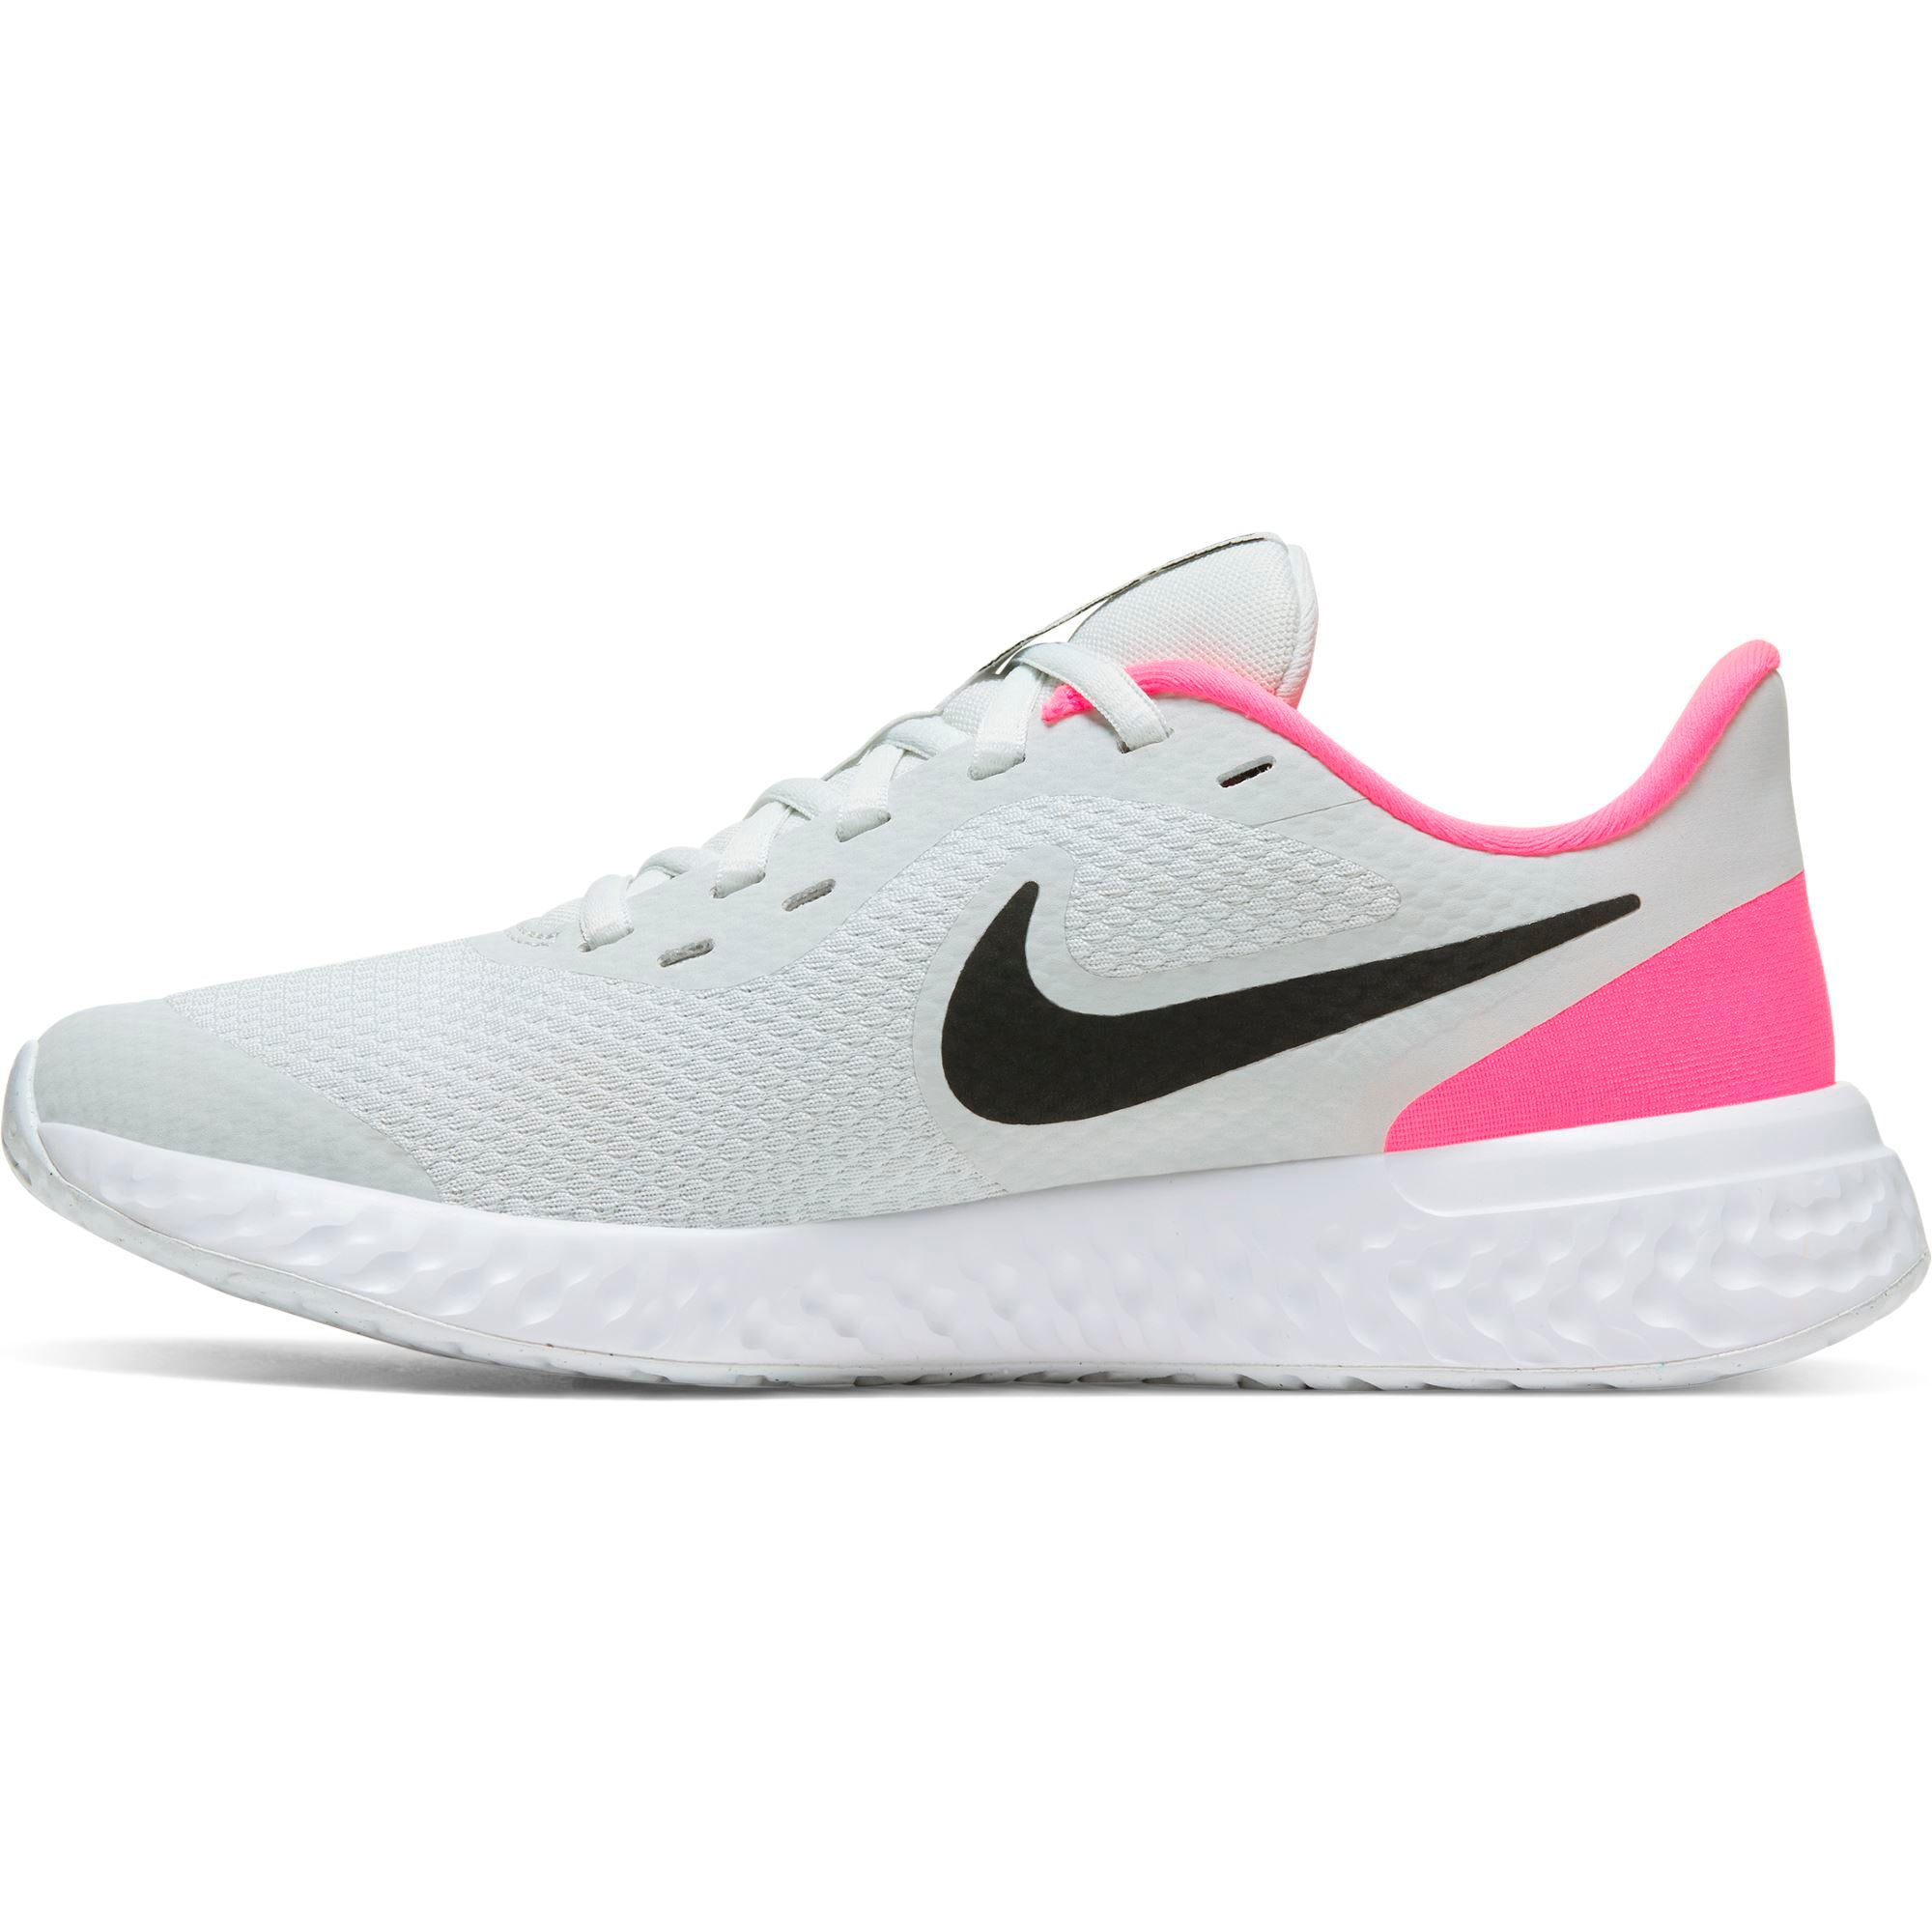 Nike Big Kids Revolution 5 - Photon Dust/Black-Hyper Pink-White SP-Footwear-Kids Nike